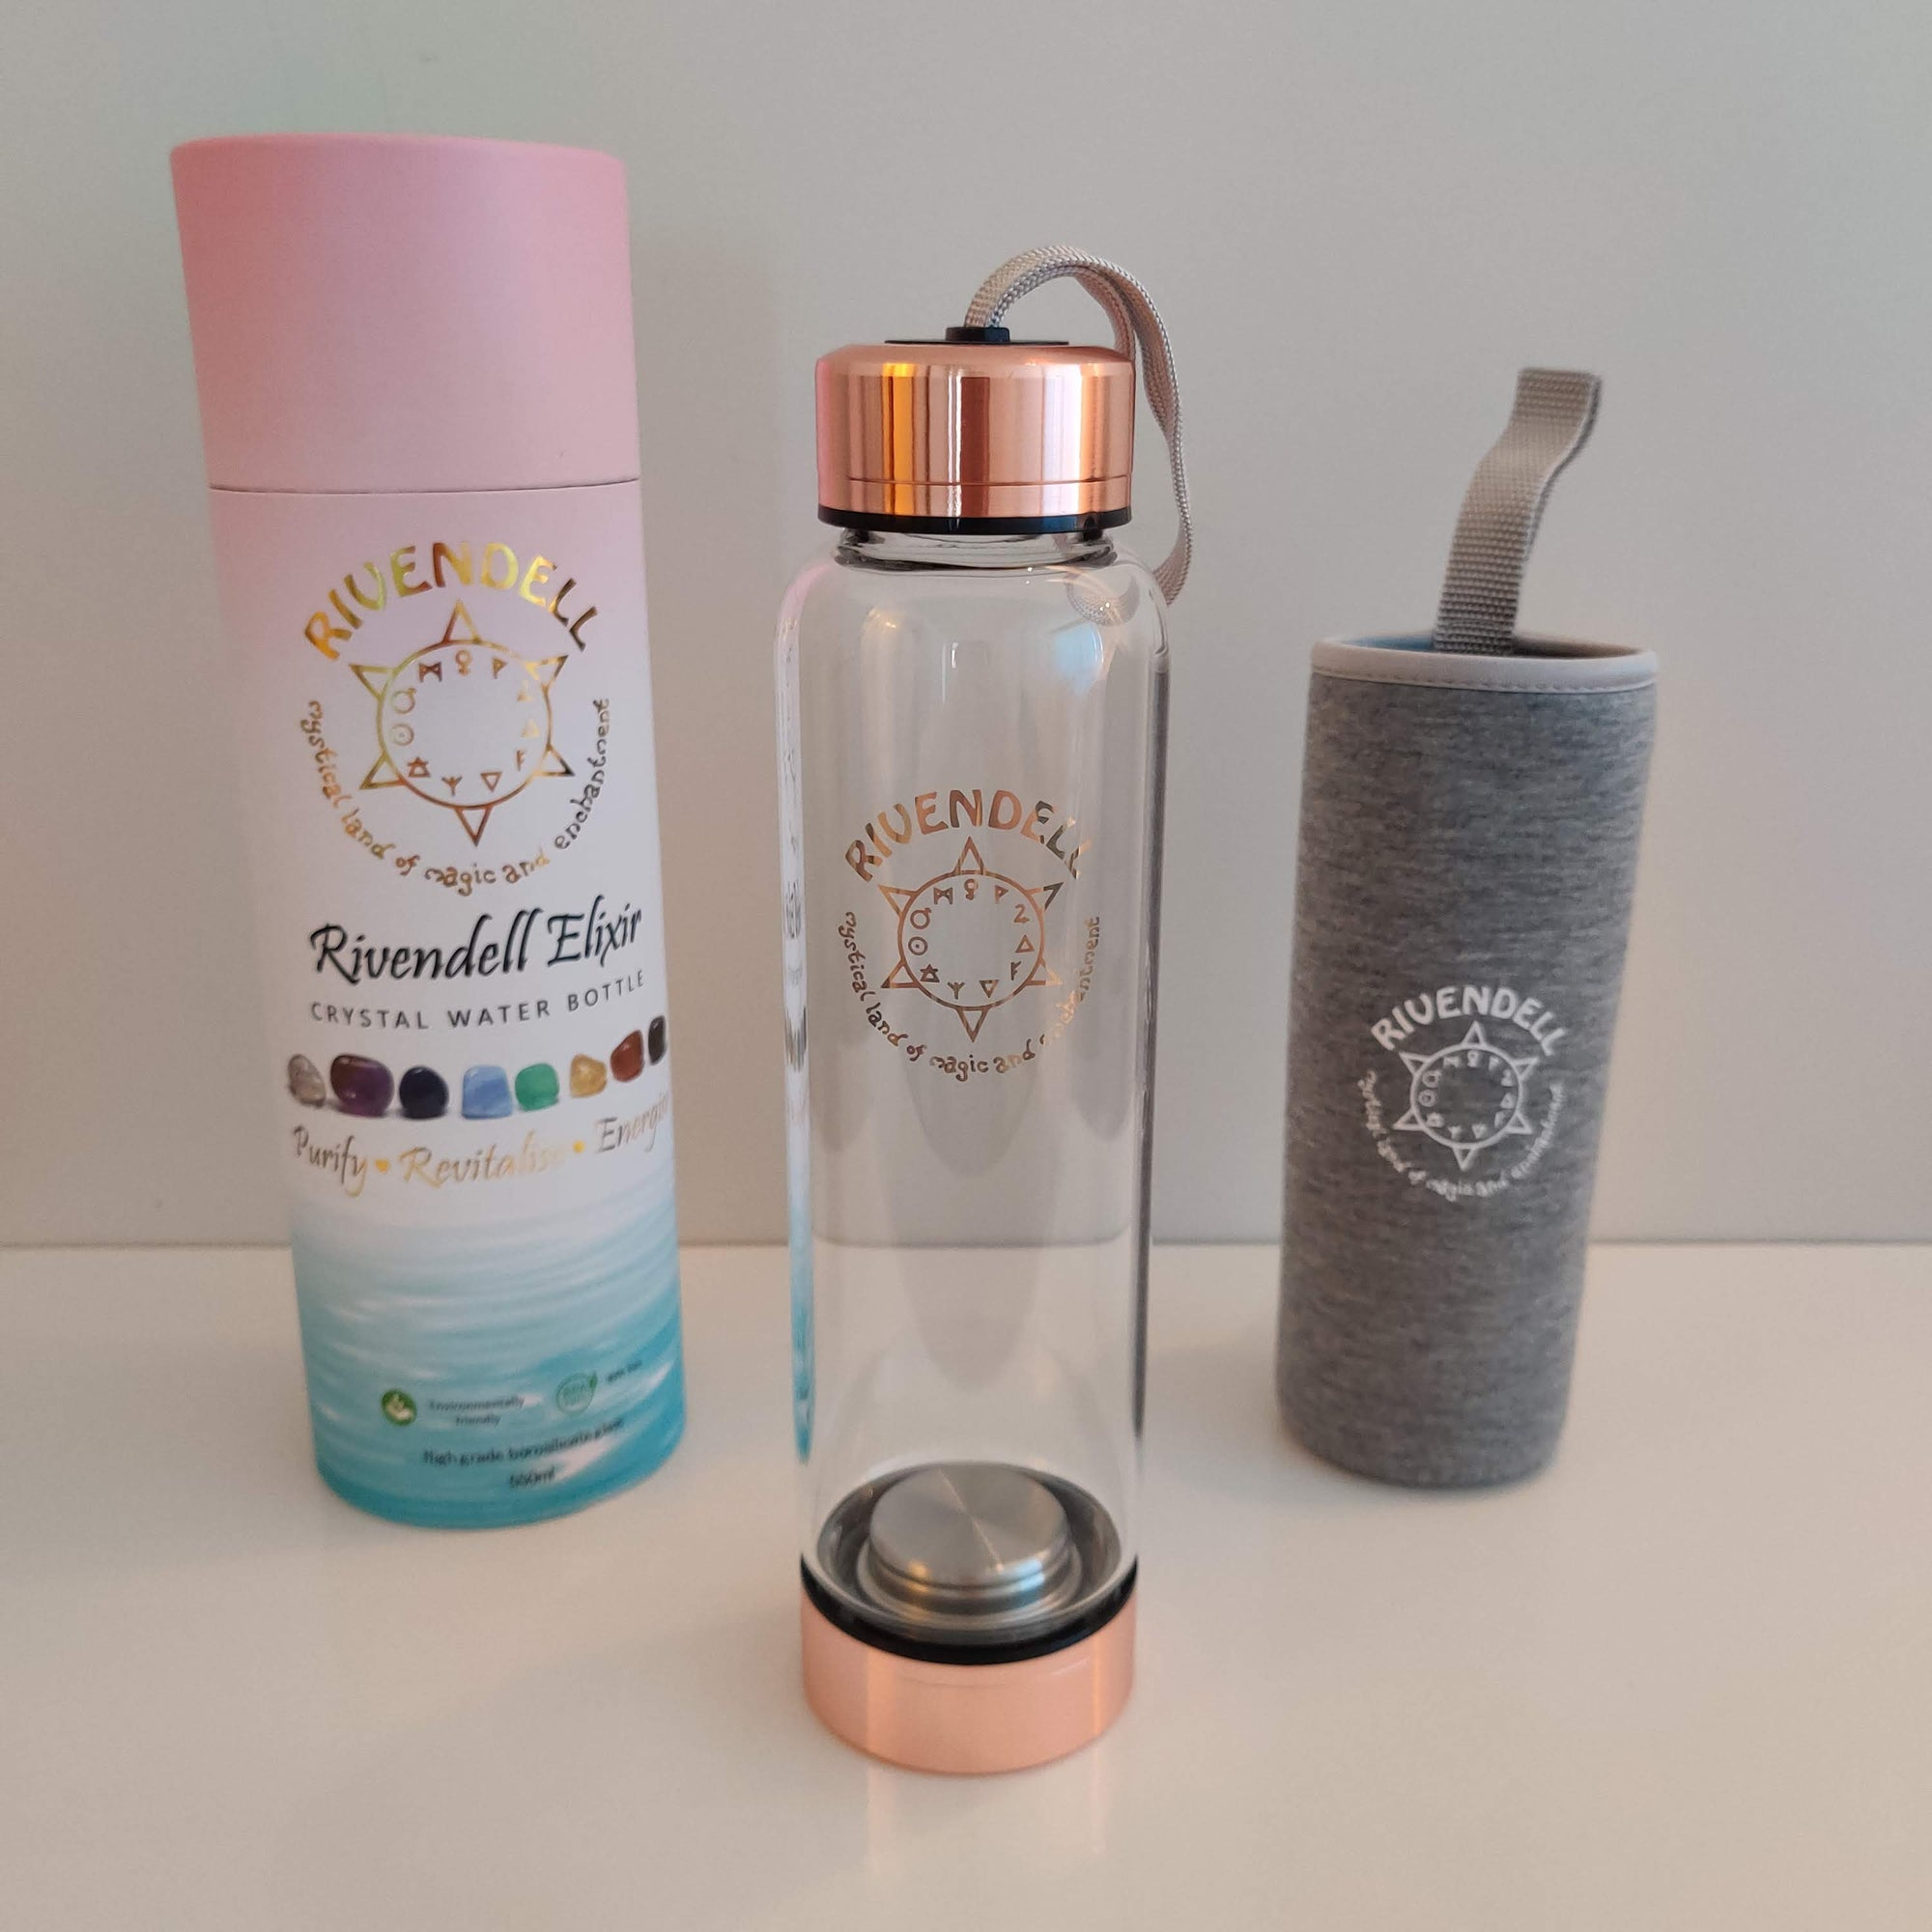 Point Crystal Water Bottle: Rivendell Elixir - Rivendell Shop